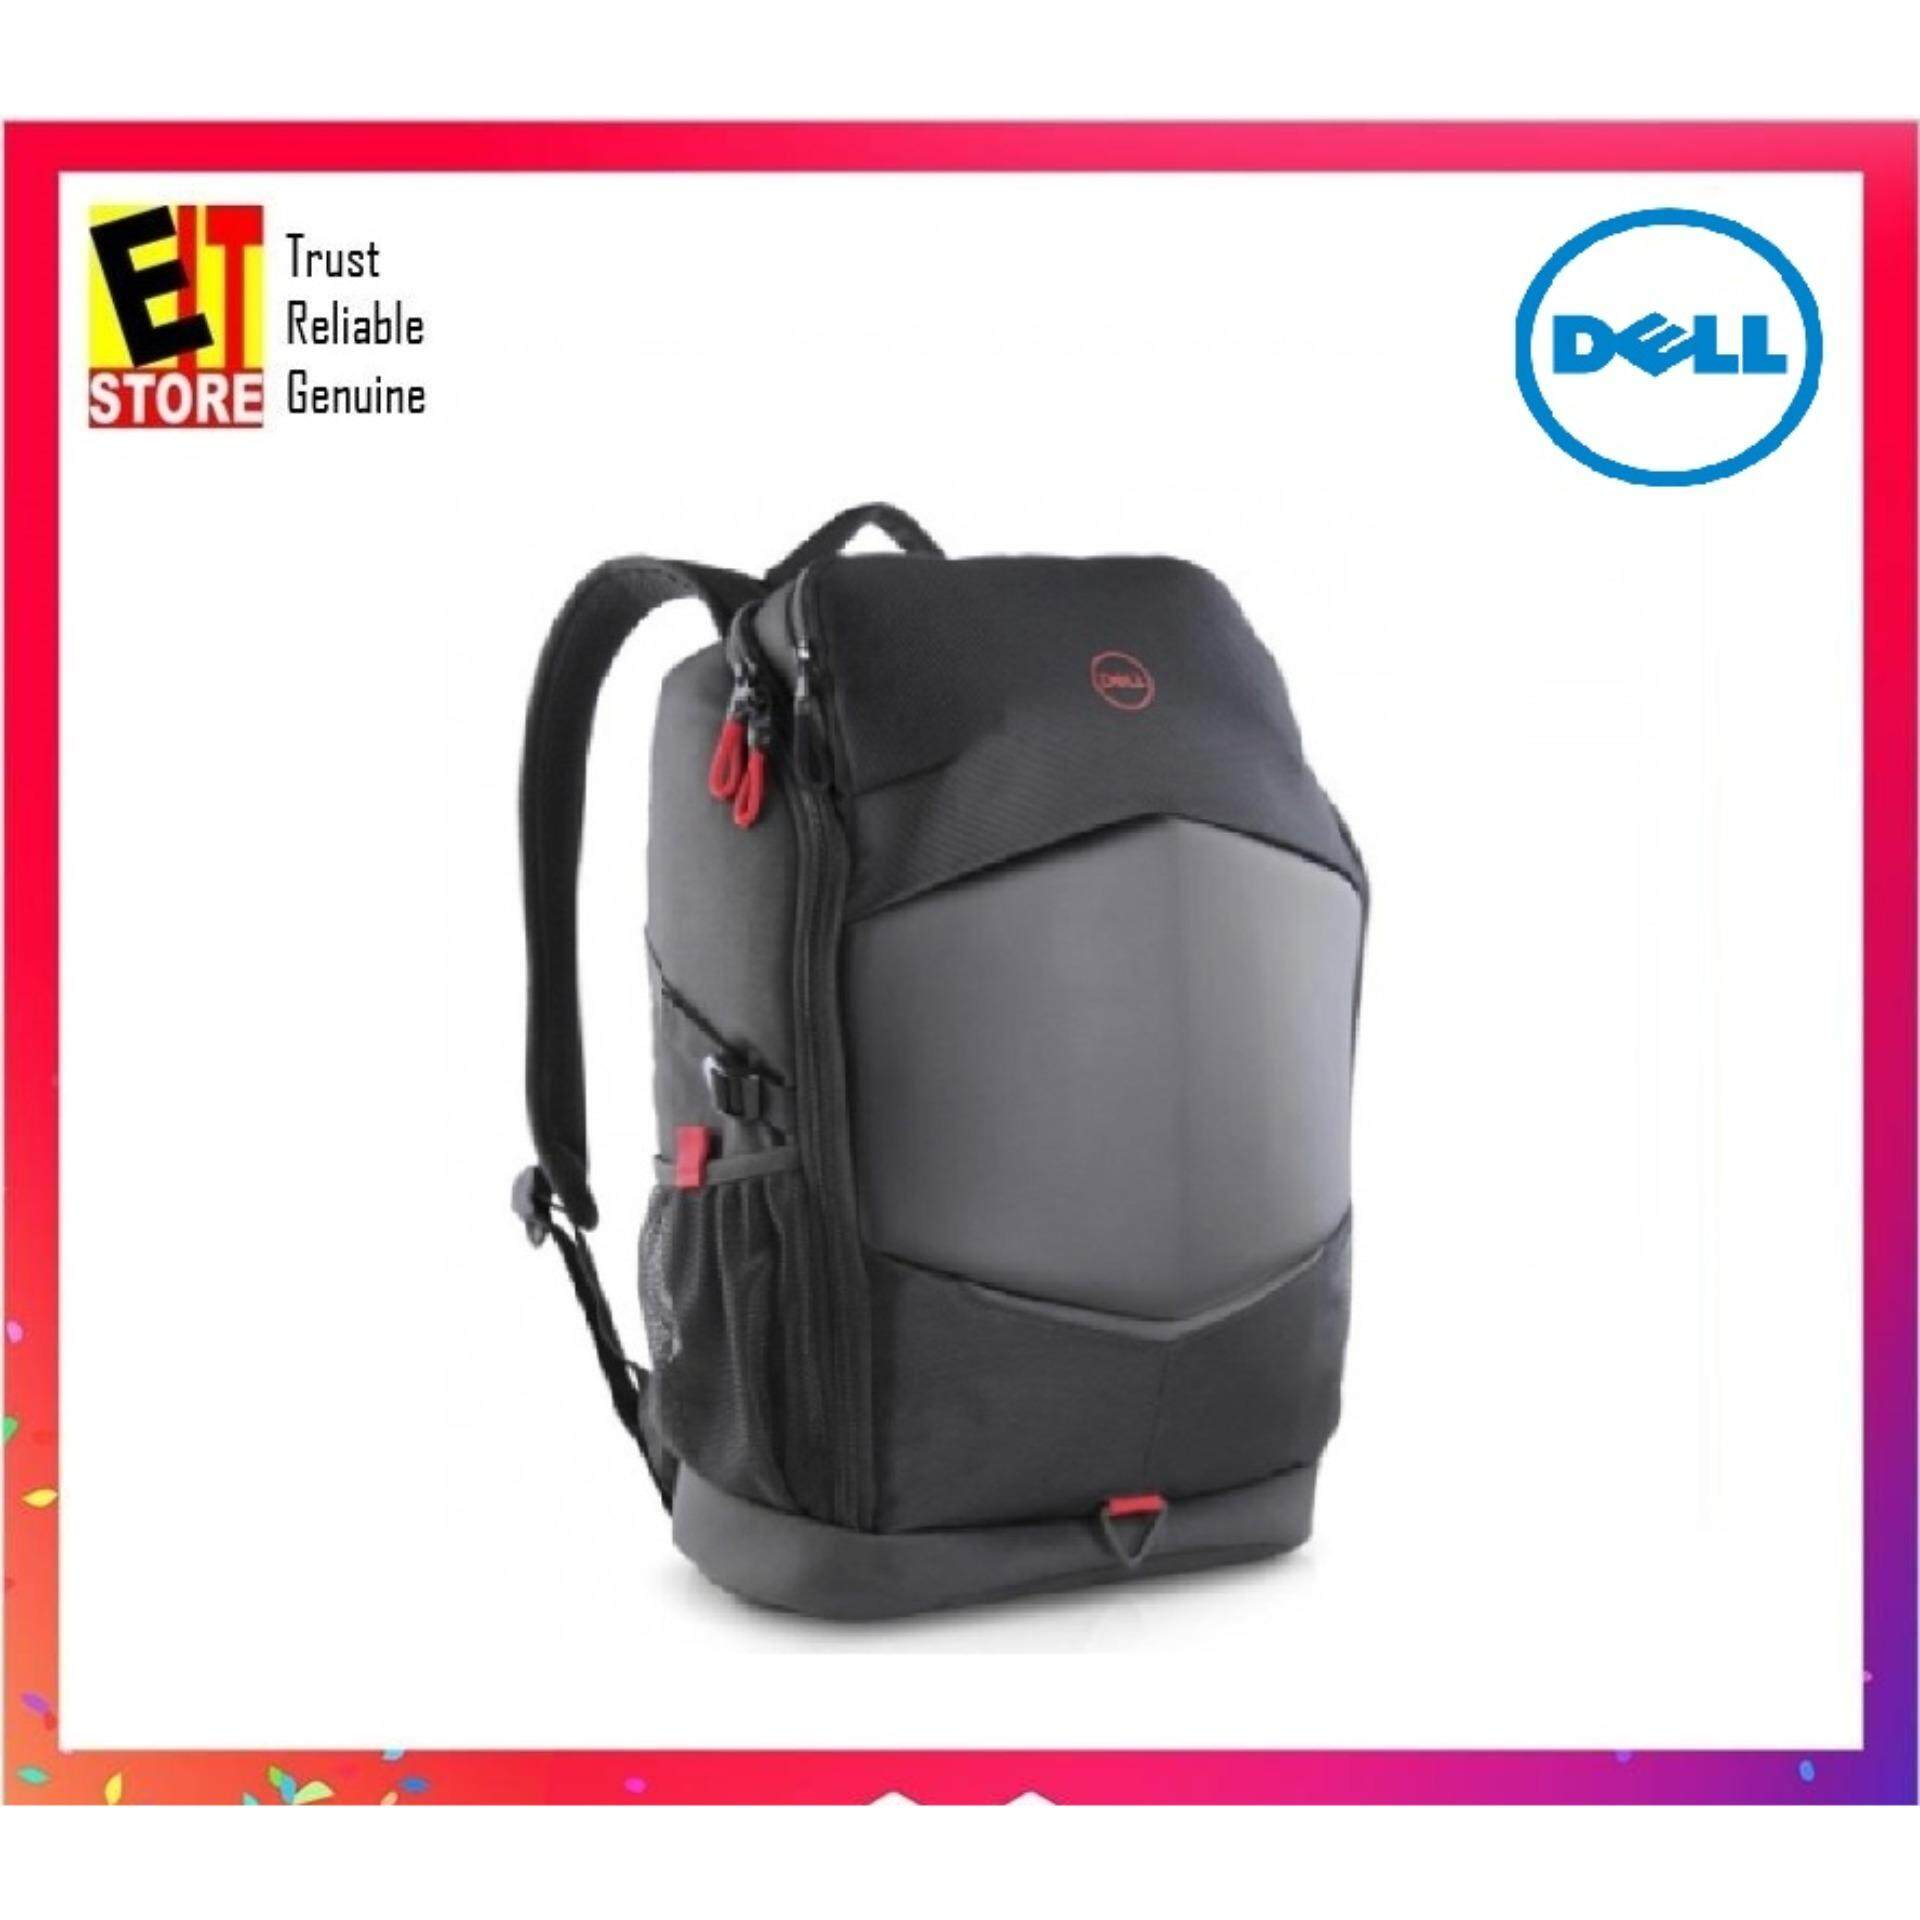 Dell Laptop Bags 3 price in Malaysia - Best Dell Laptop Bags 3  5af07063a